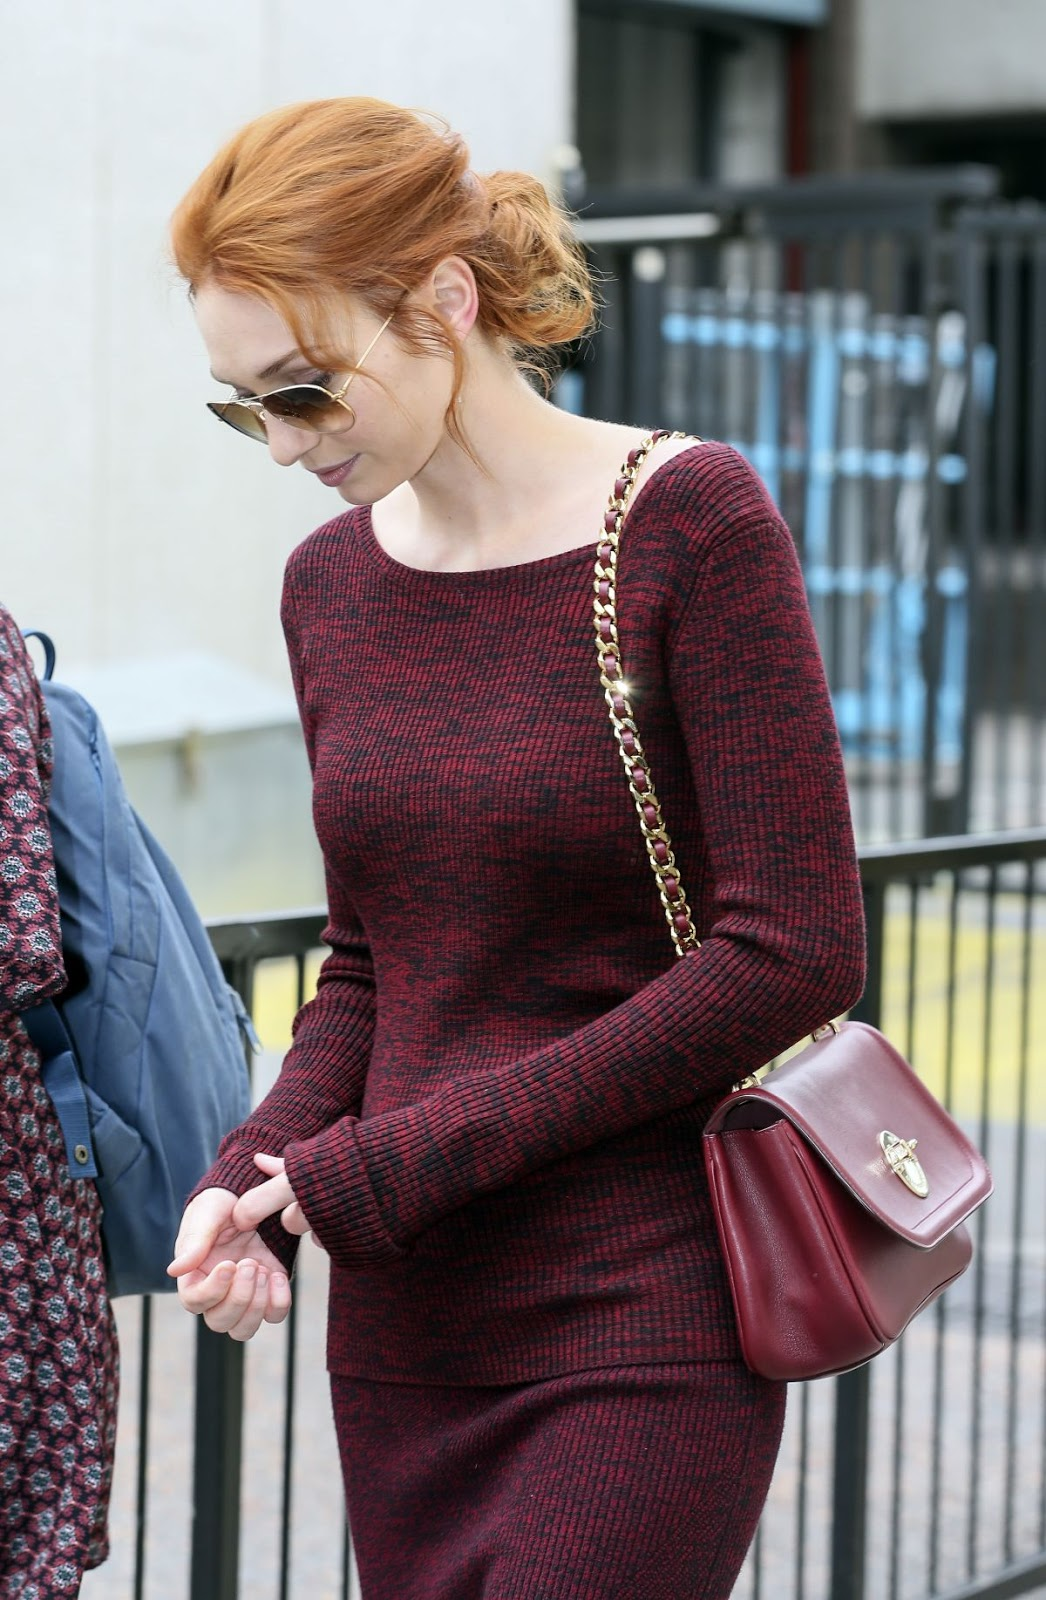 HQ Photos of Eleanor Tomlinson Leaving This Morning Studio In London